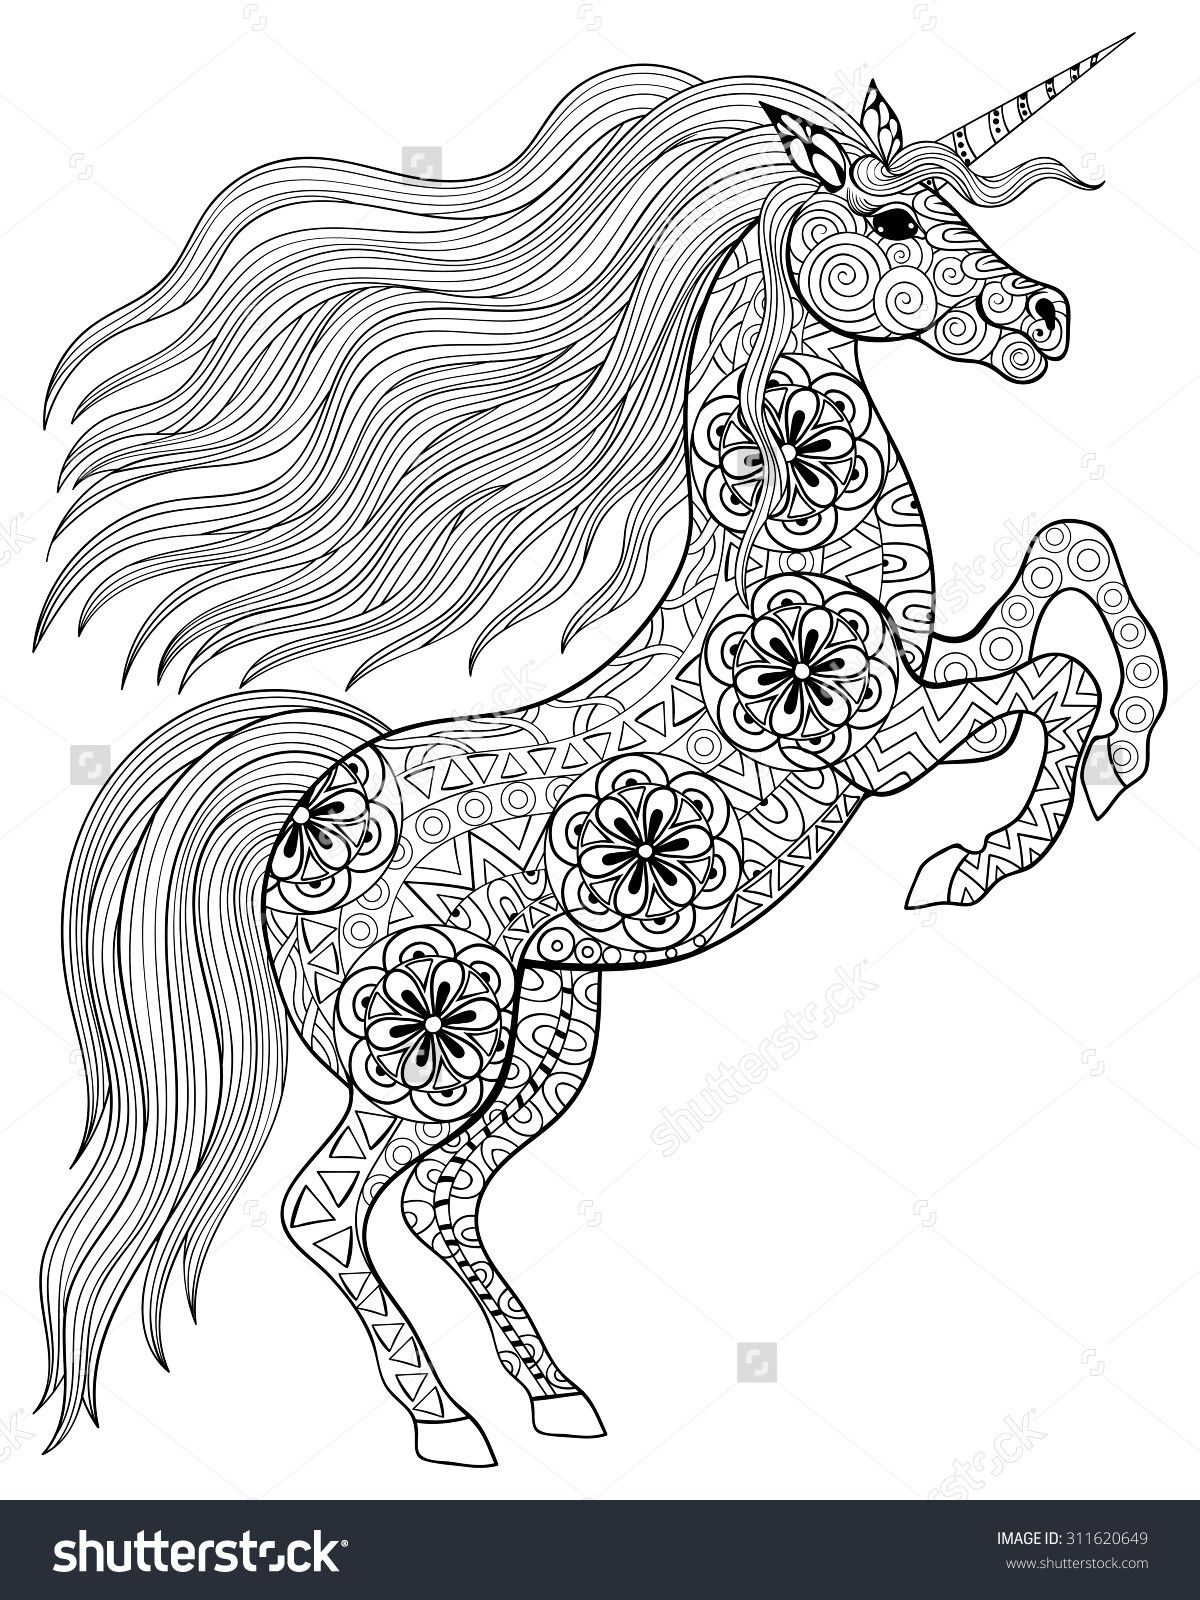 Unicorn Adult Coloring Page Coloring Pages Adult Coloring